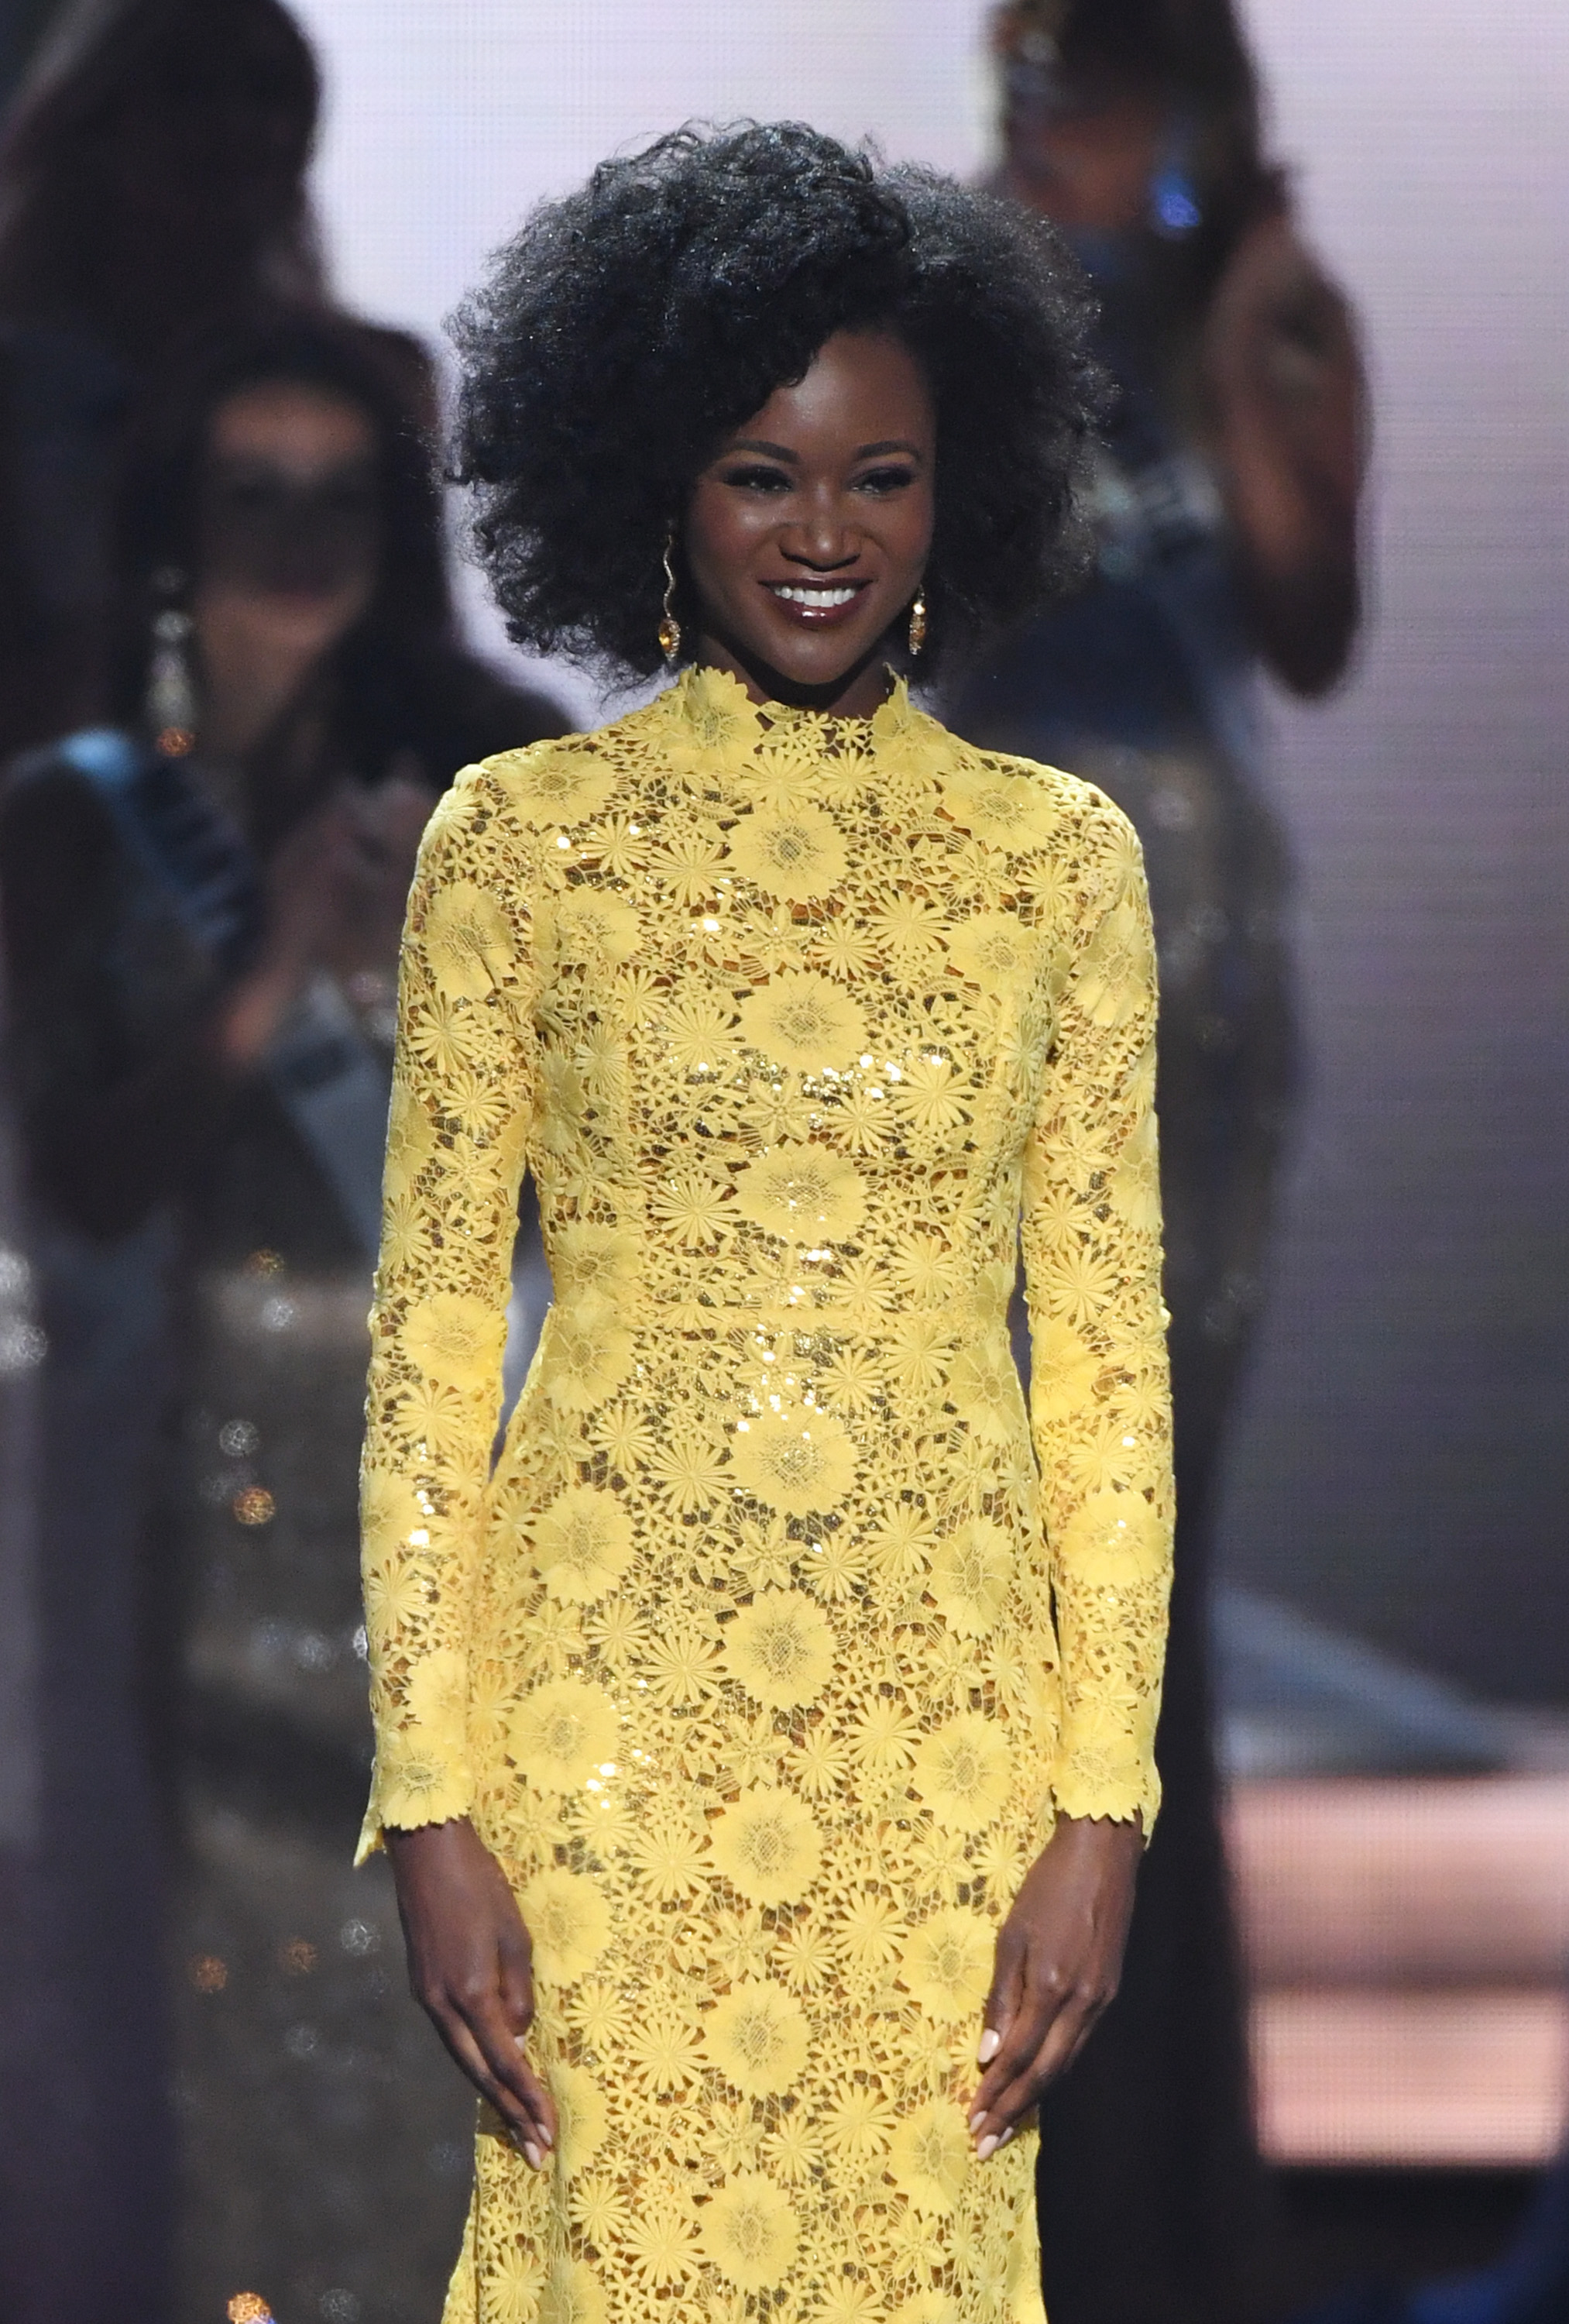 Miss USA 2016 Deshauna Barber